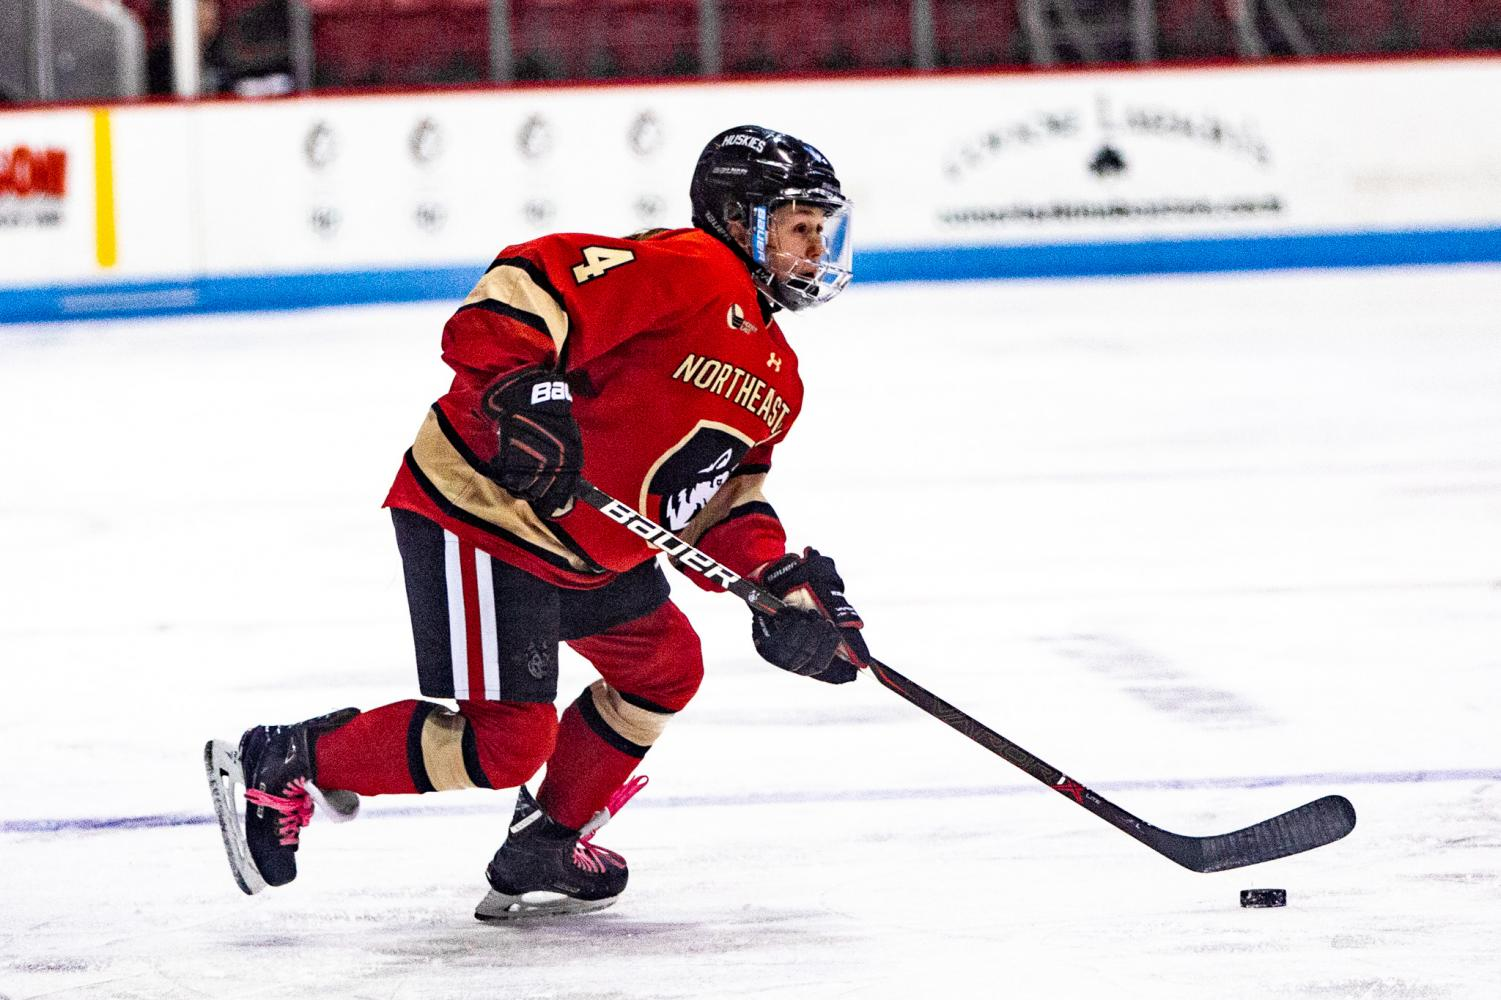 Junior defender Codie Cross moves the puck up the ice in a prior game against Vermont. Cross scored three points Friday on a goal and two assists.